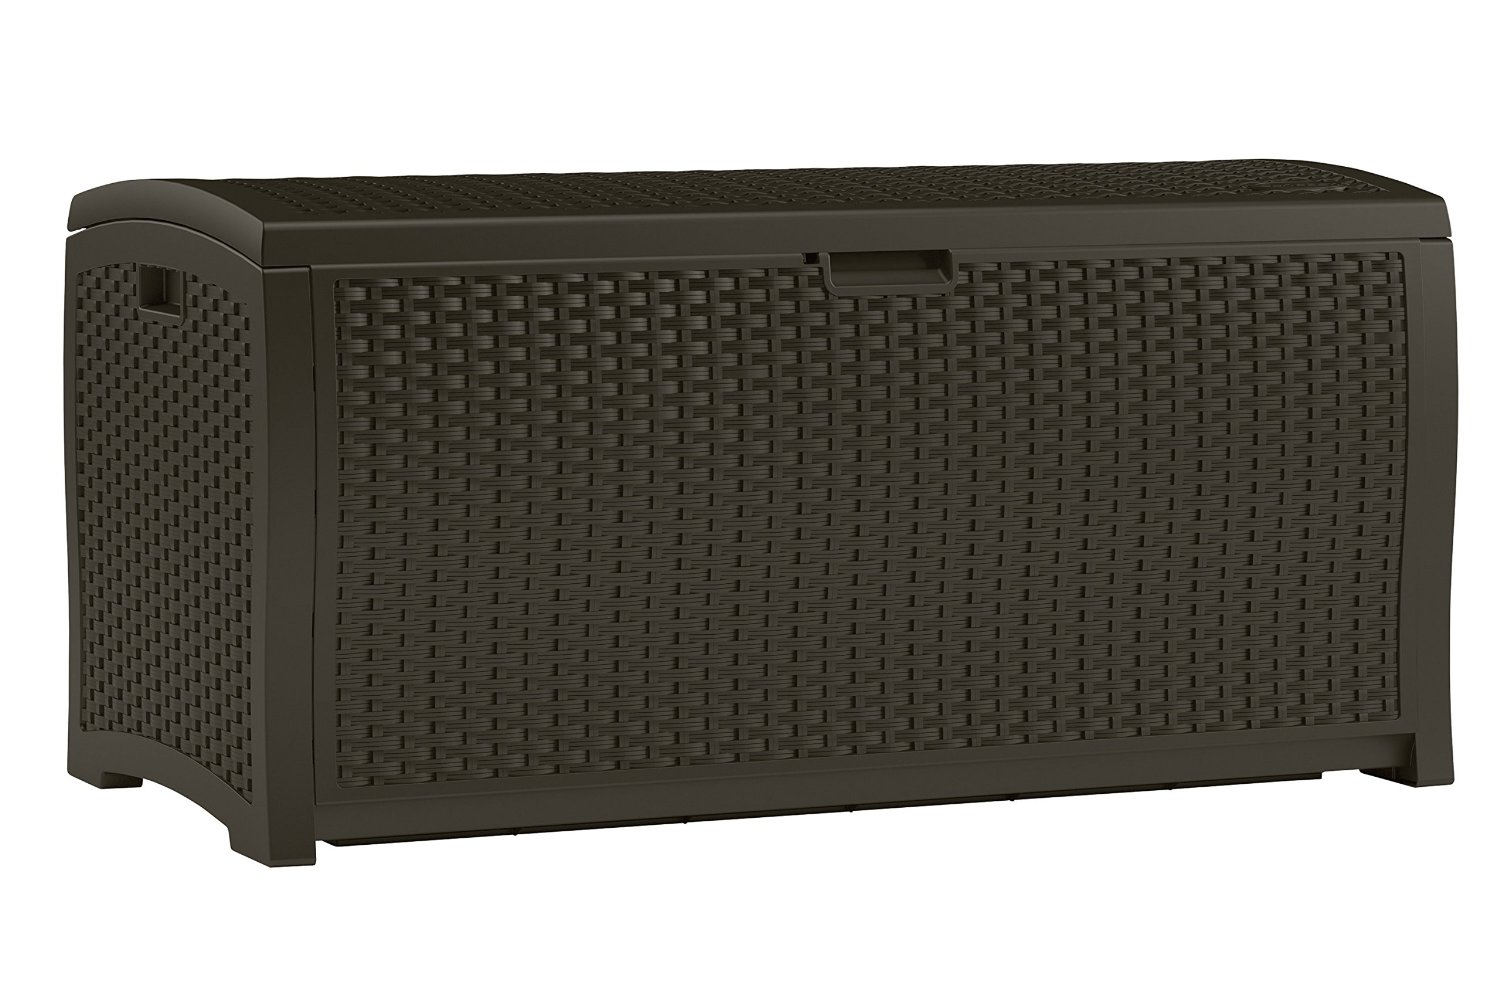 Suncast DBW9200 Mocha Wicker Resin Deck Box